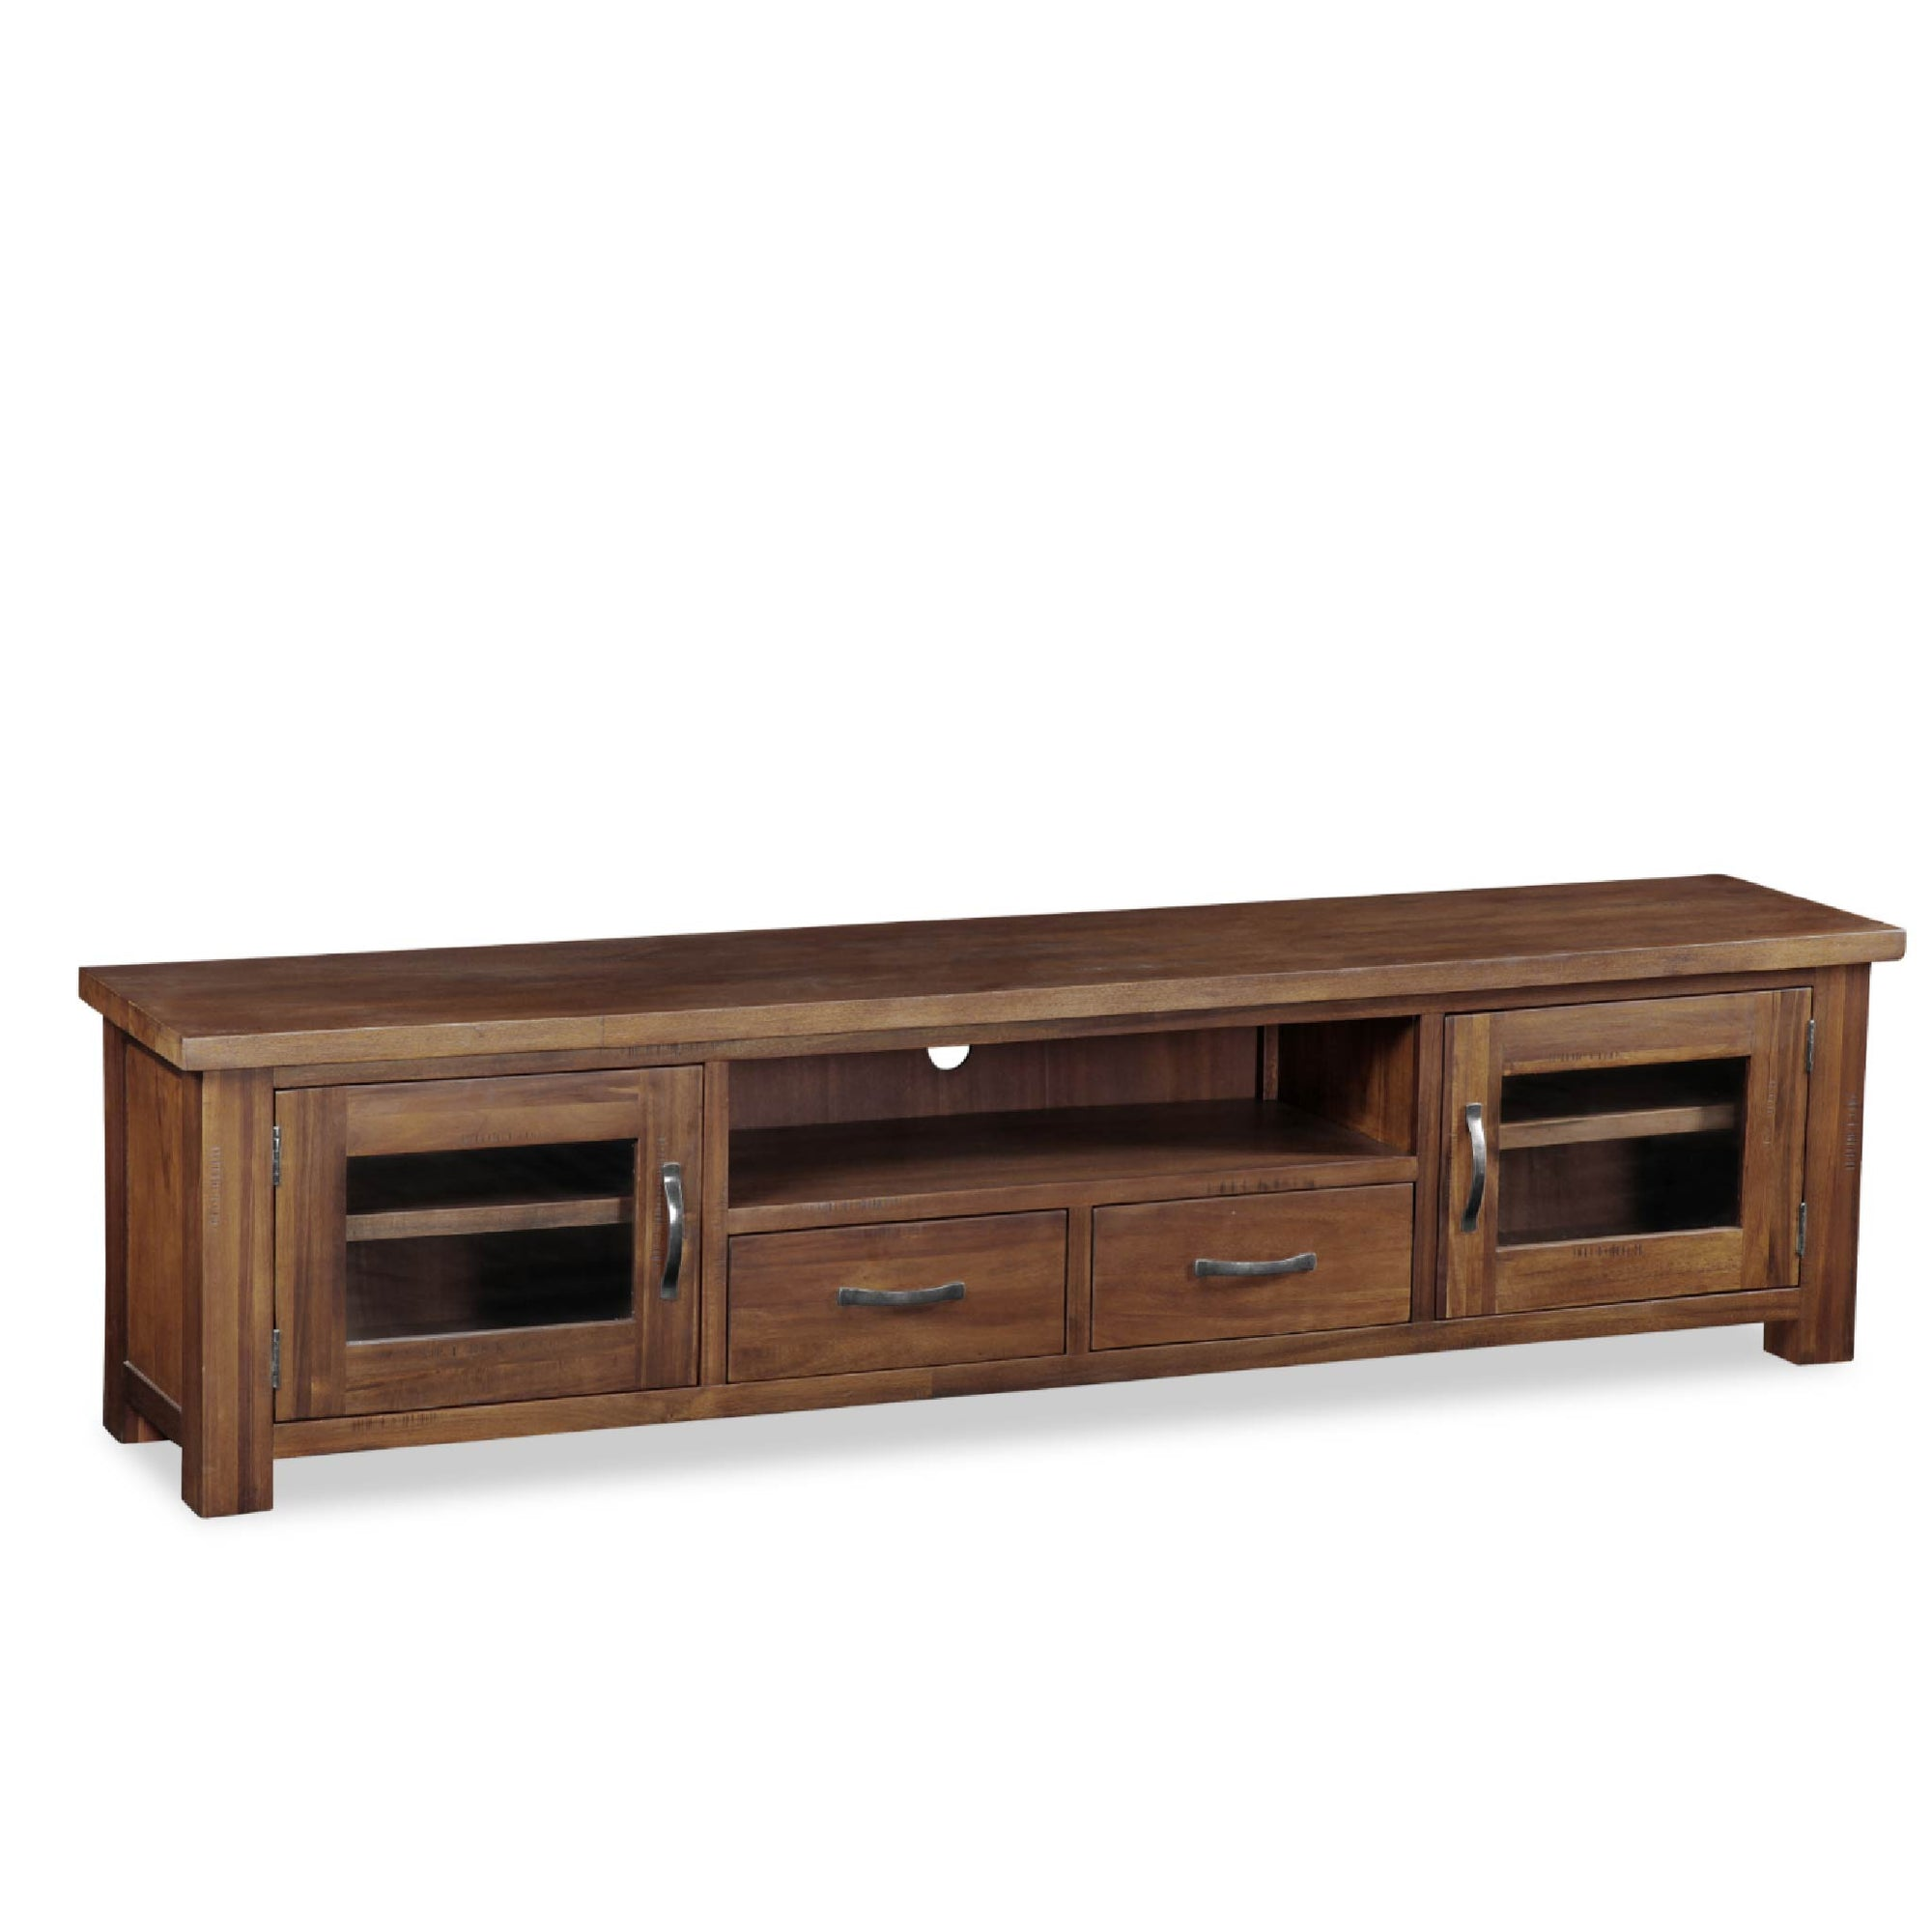 Ladock Extra Large 220cm TV Unit by Roseland Furniture